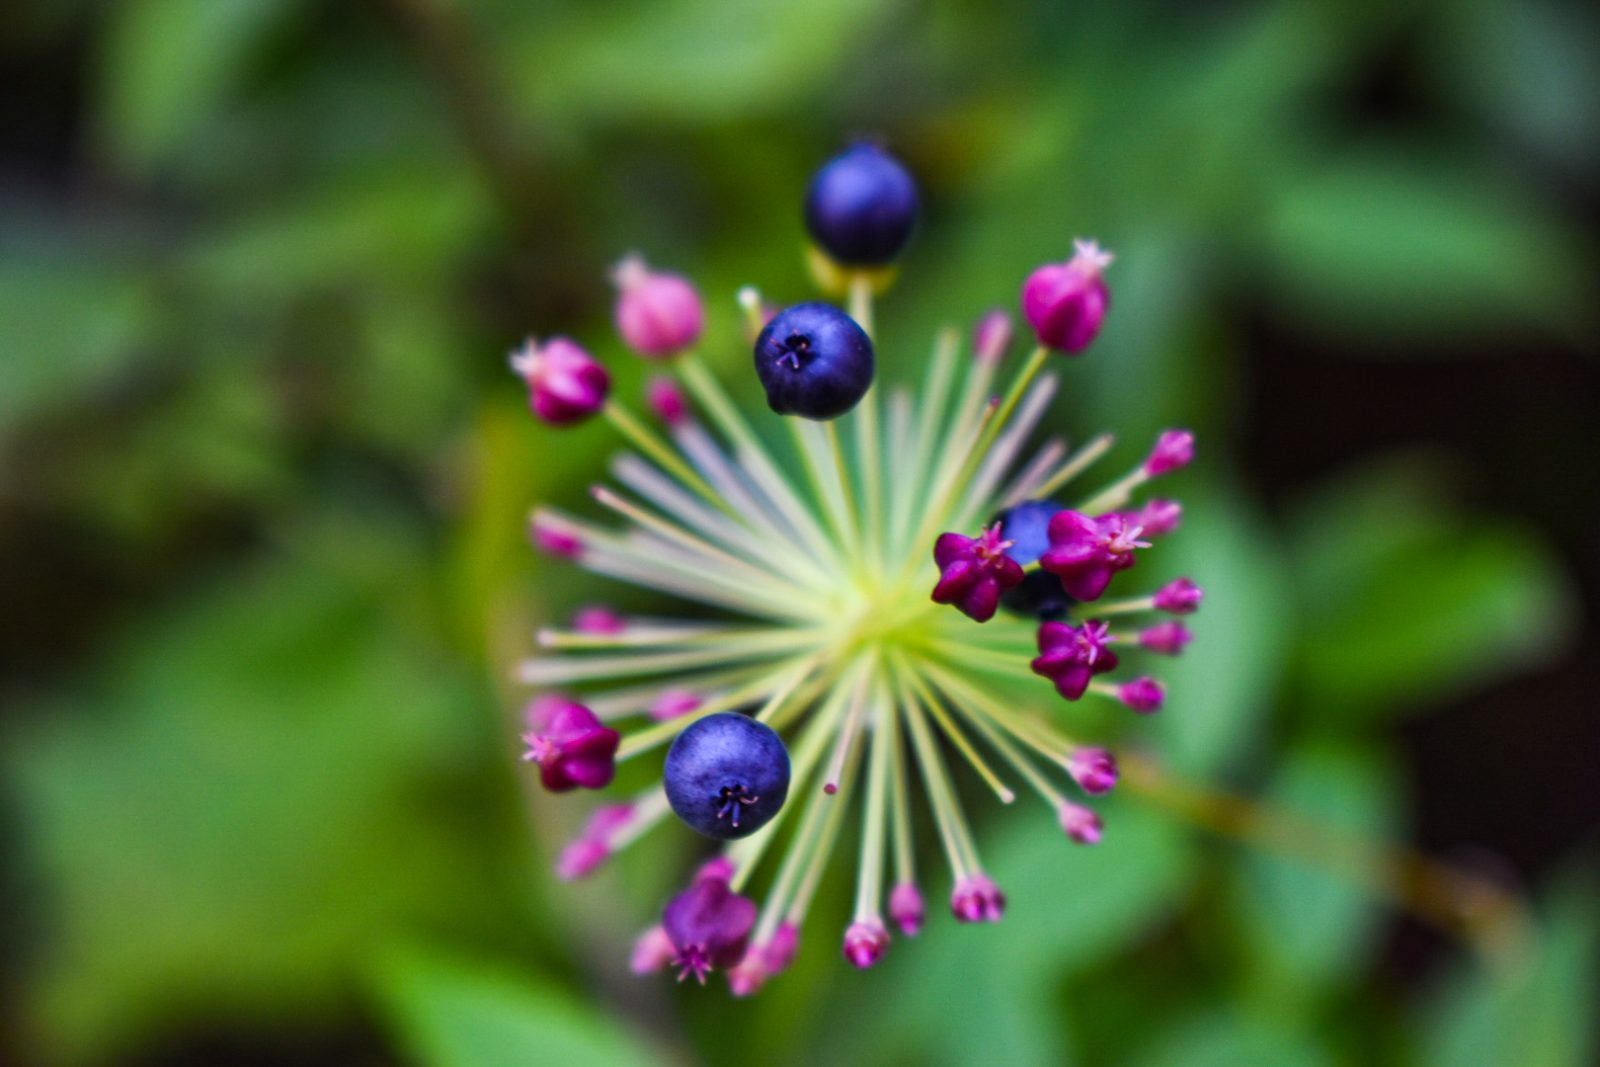 Berry in a Burst